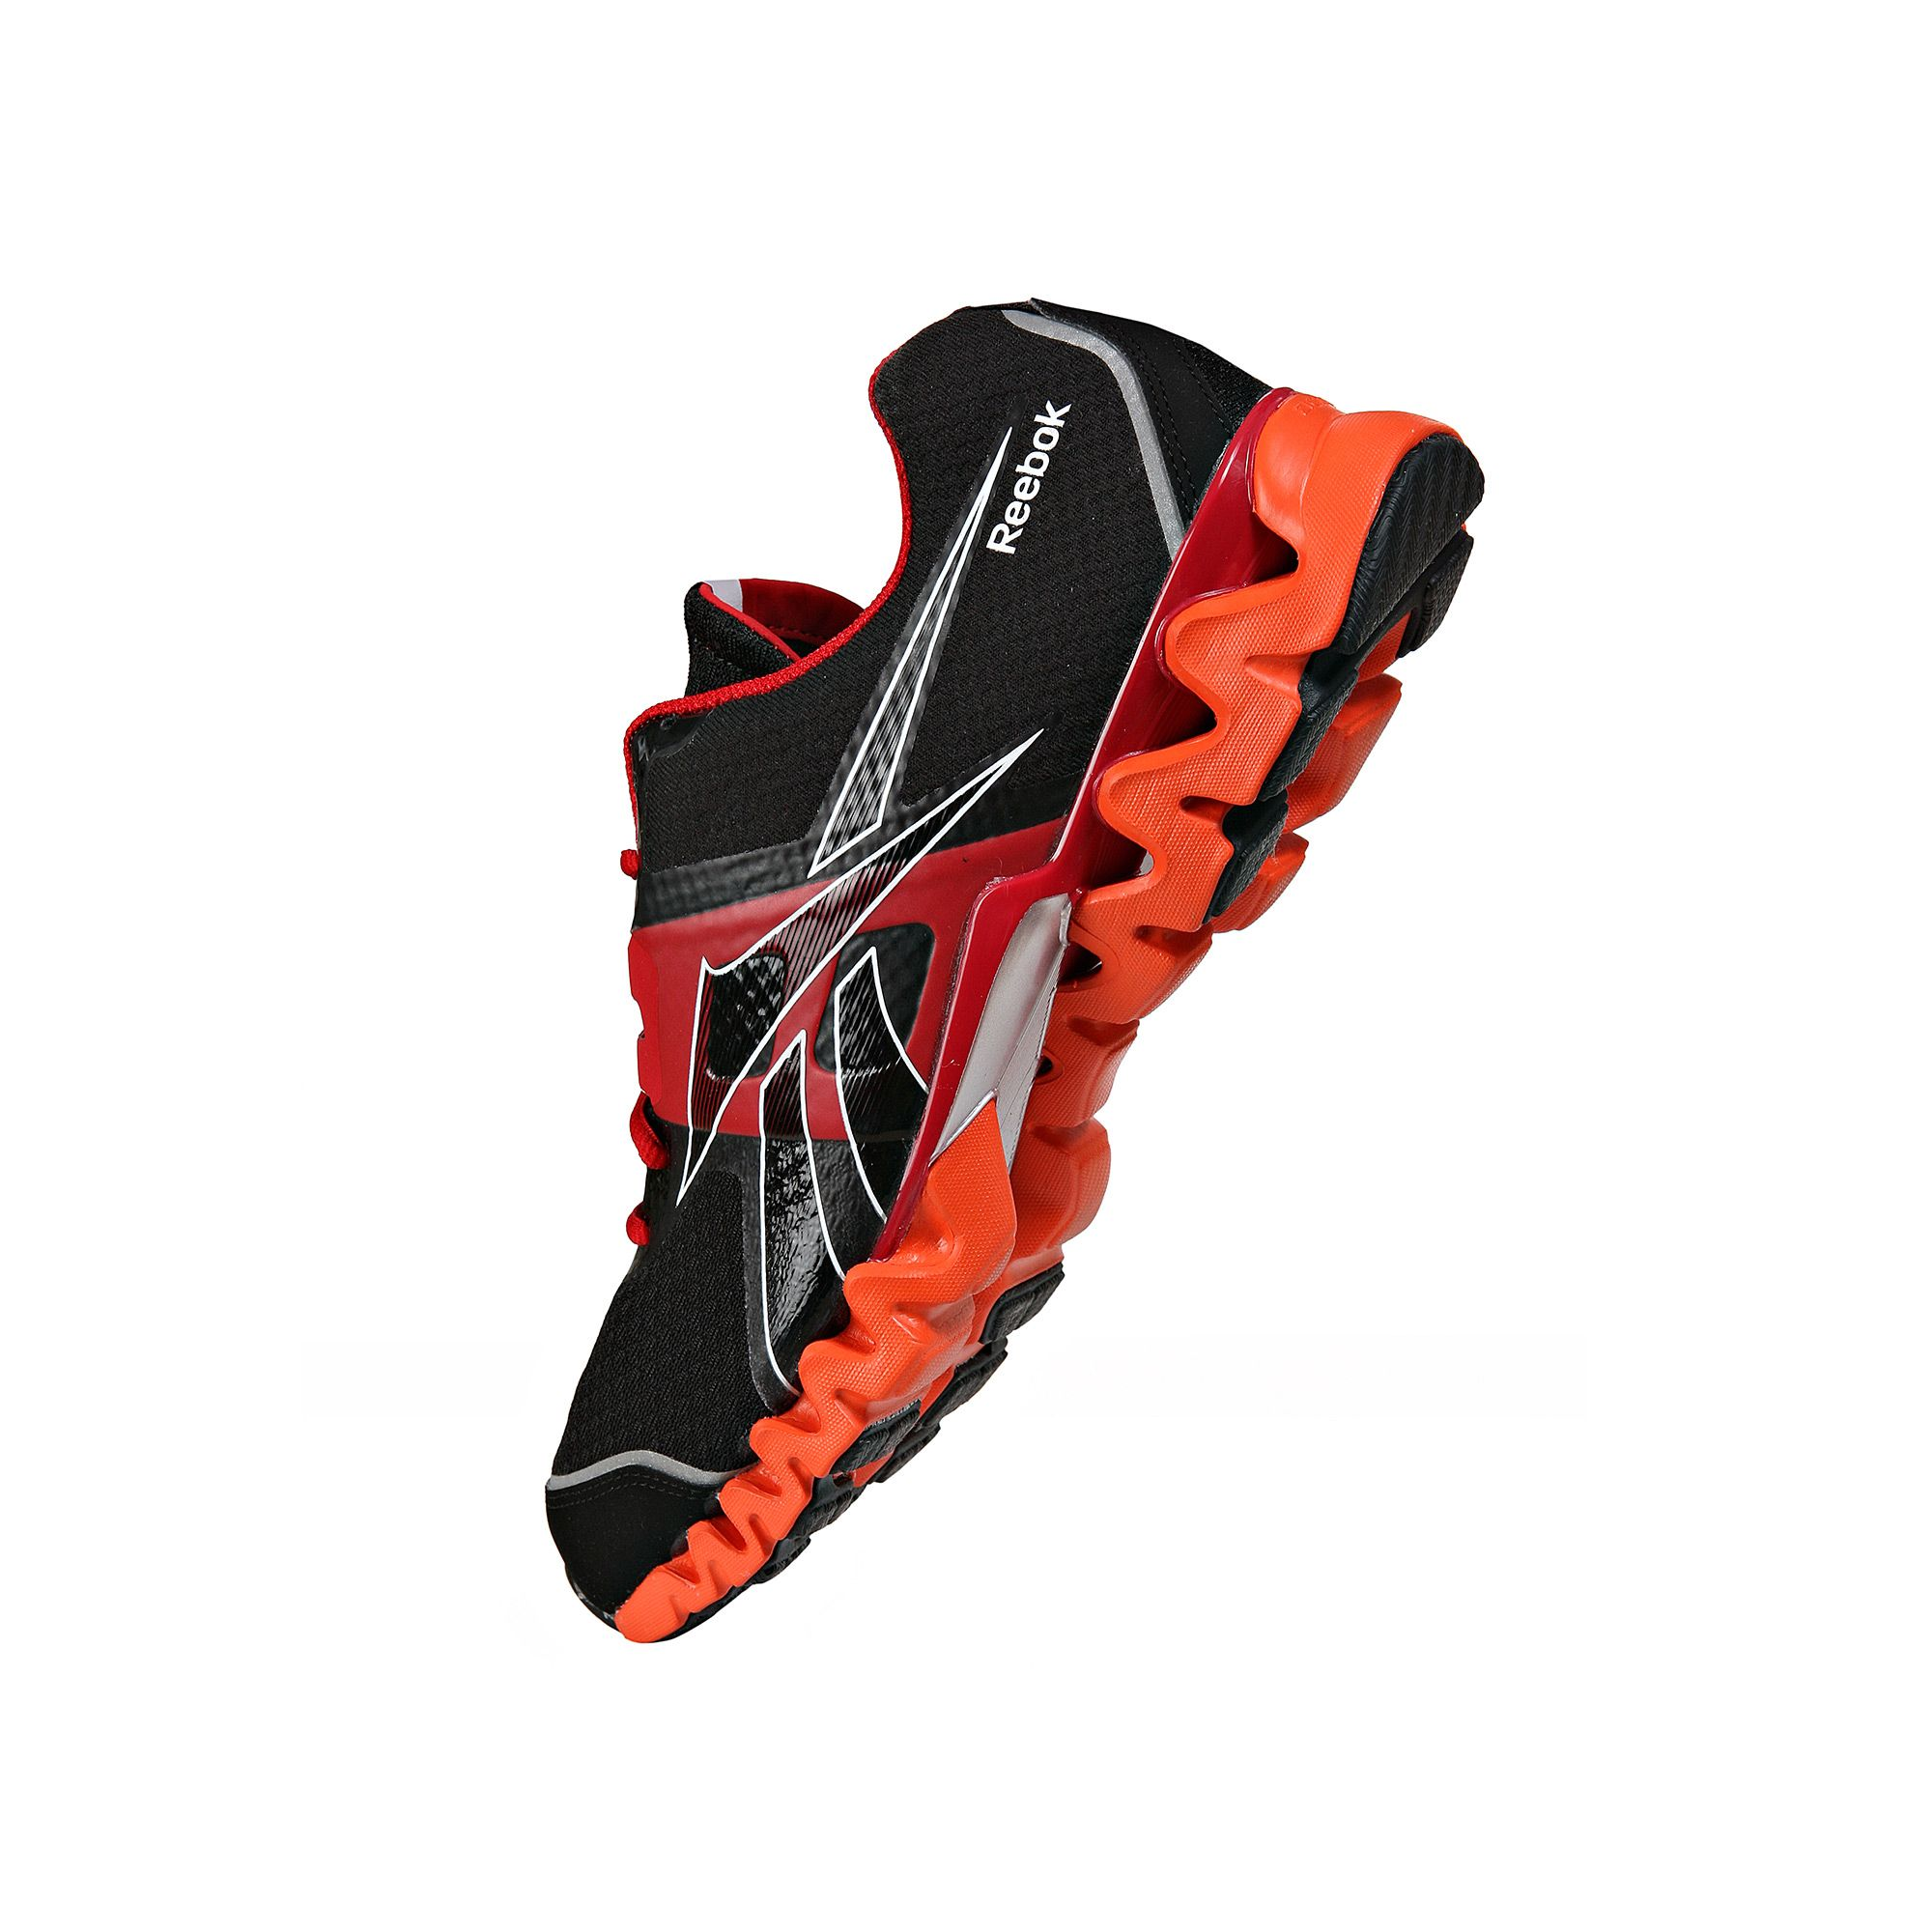 Reebok-Sports-shoes-and-running-shoes-for-men (22)